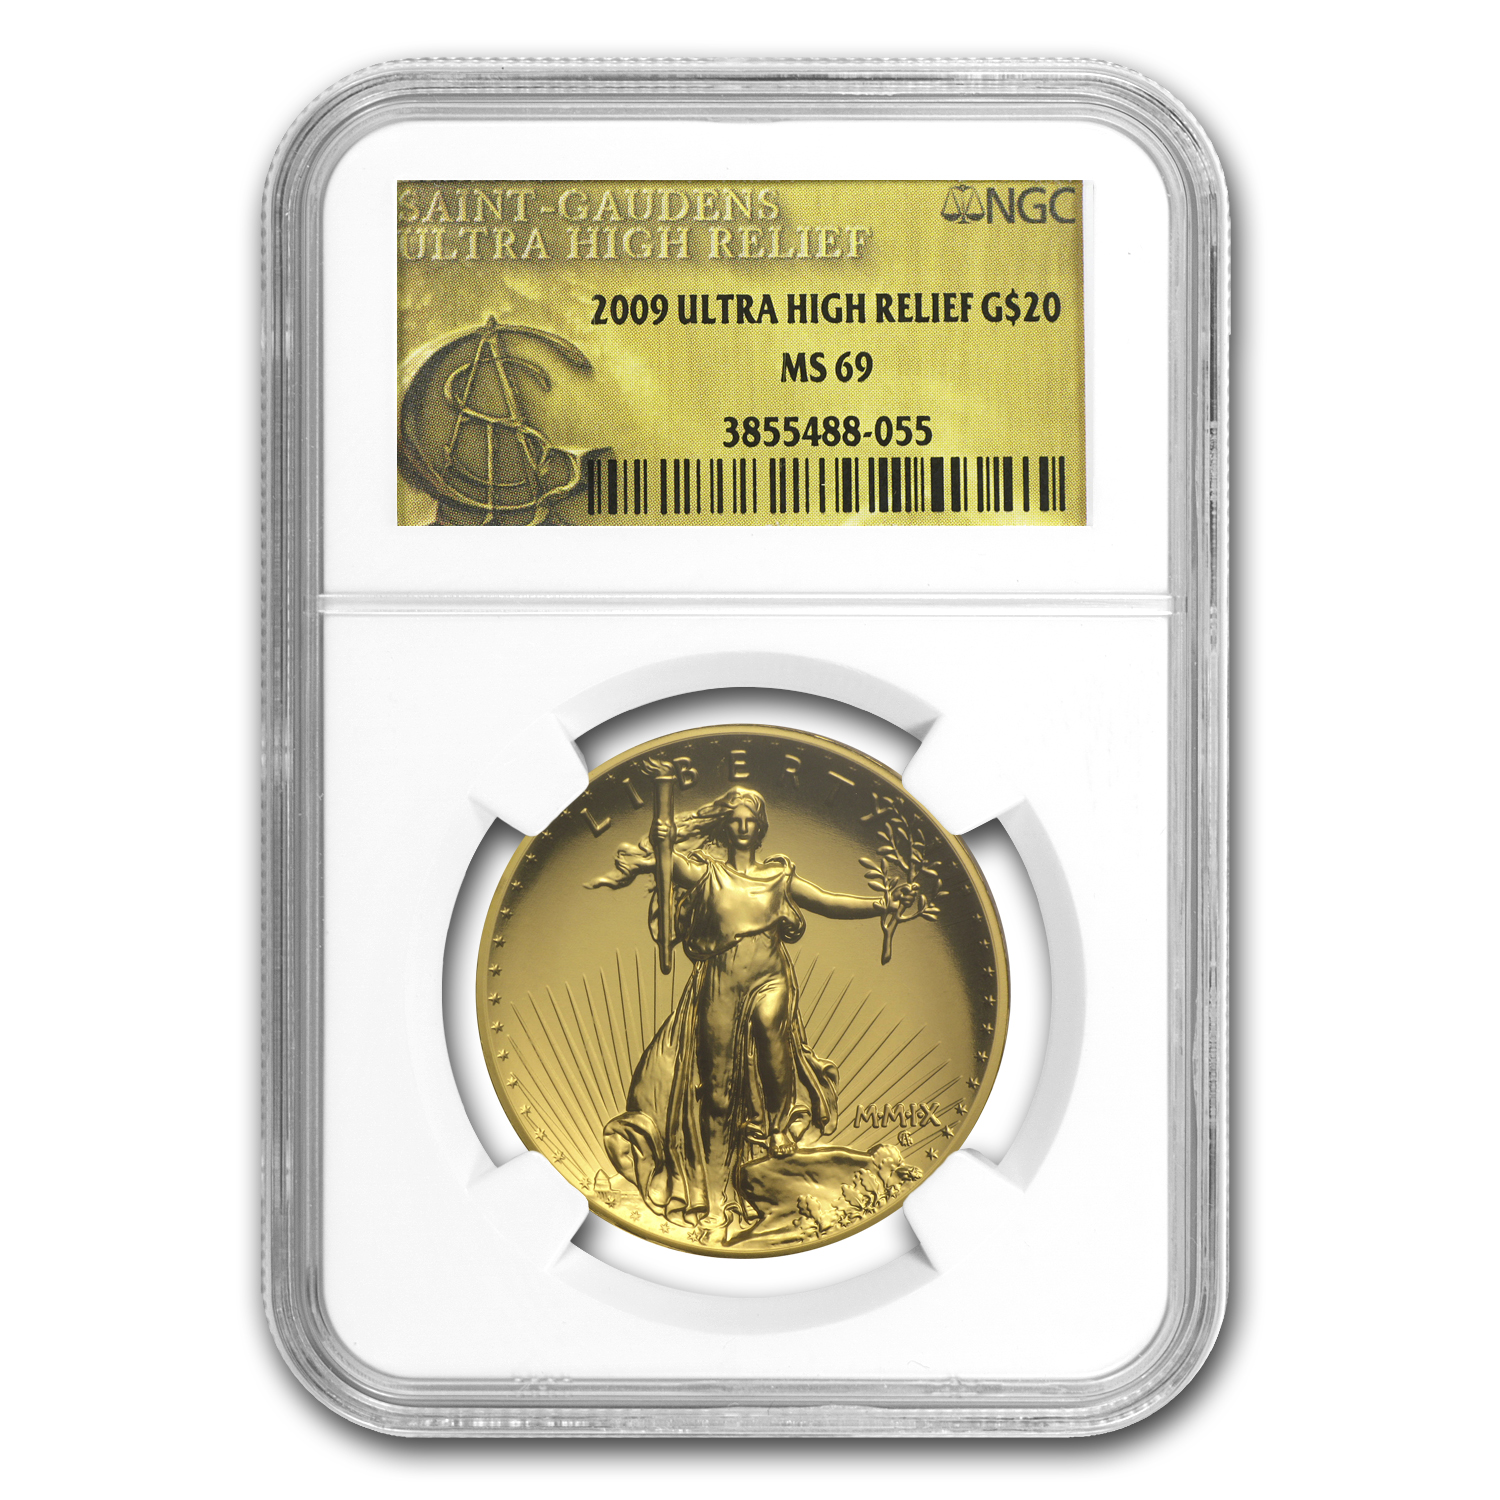 2009 Ultra High Relief Double Eagle MS-69 NGC (Gold Label)